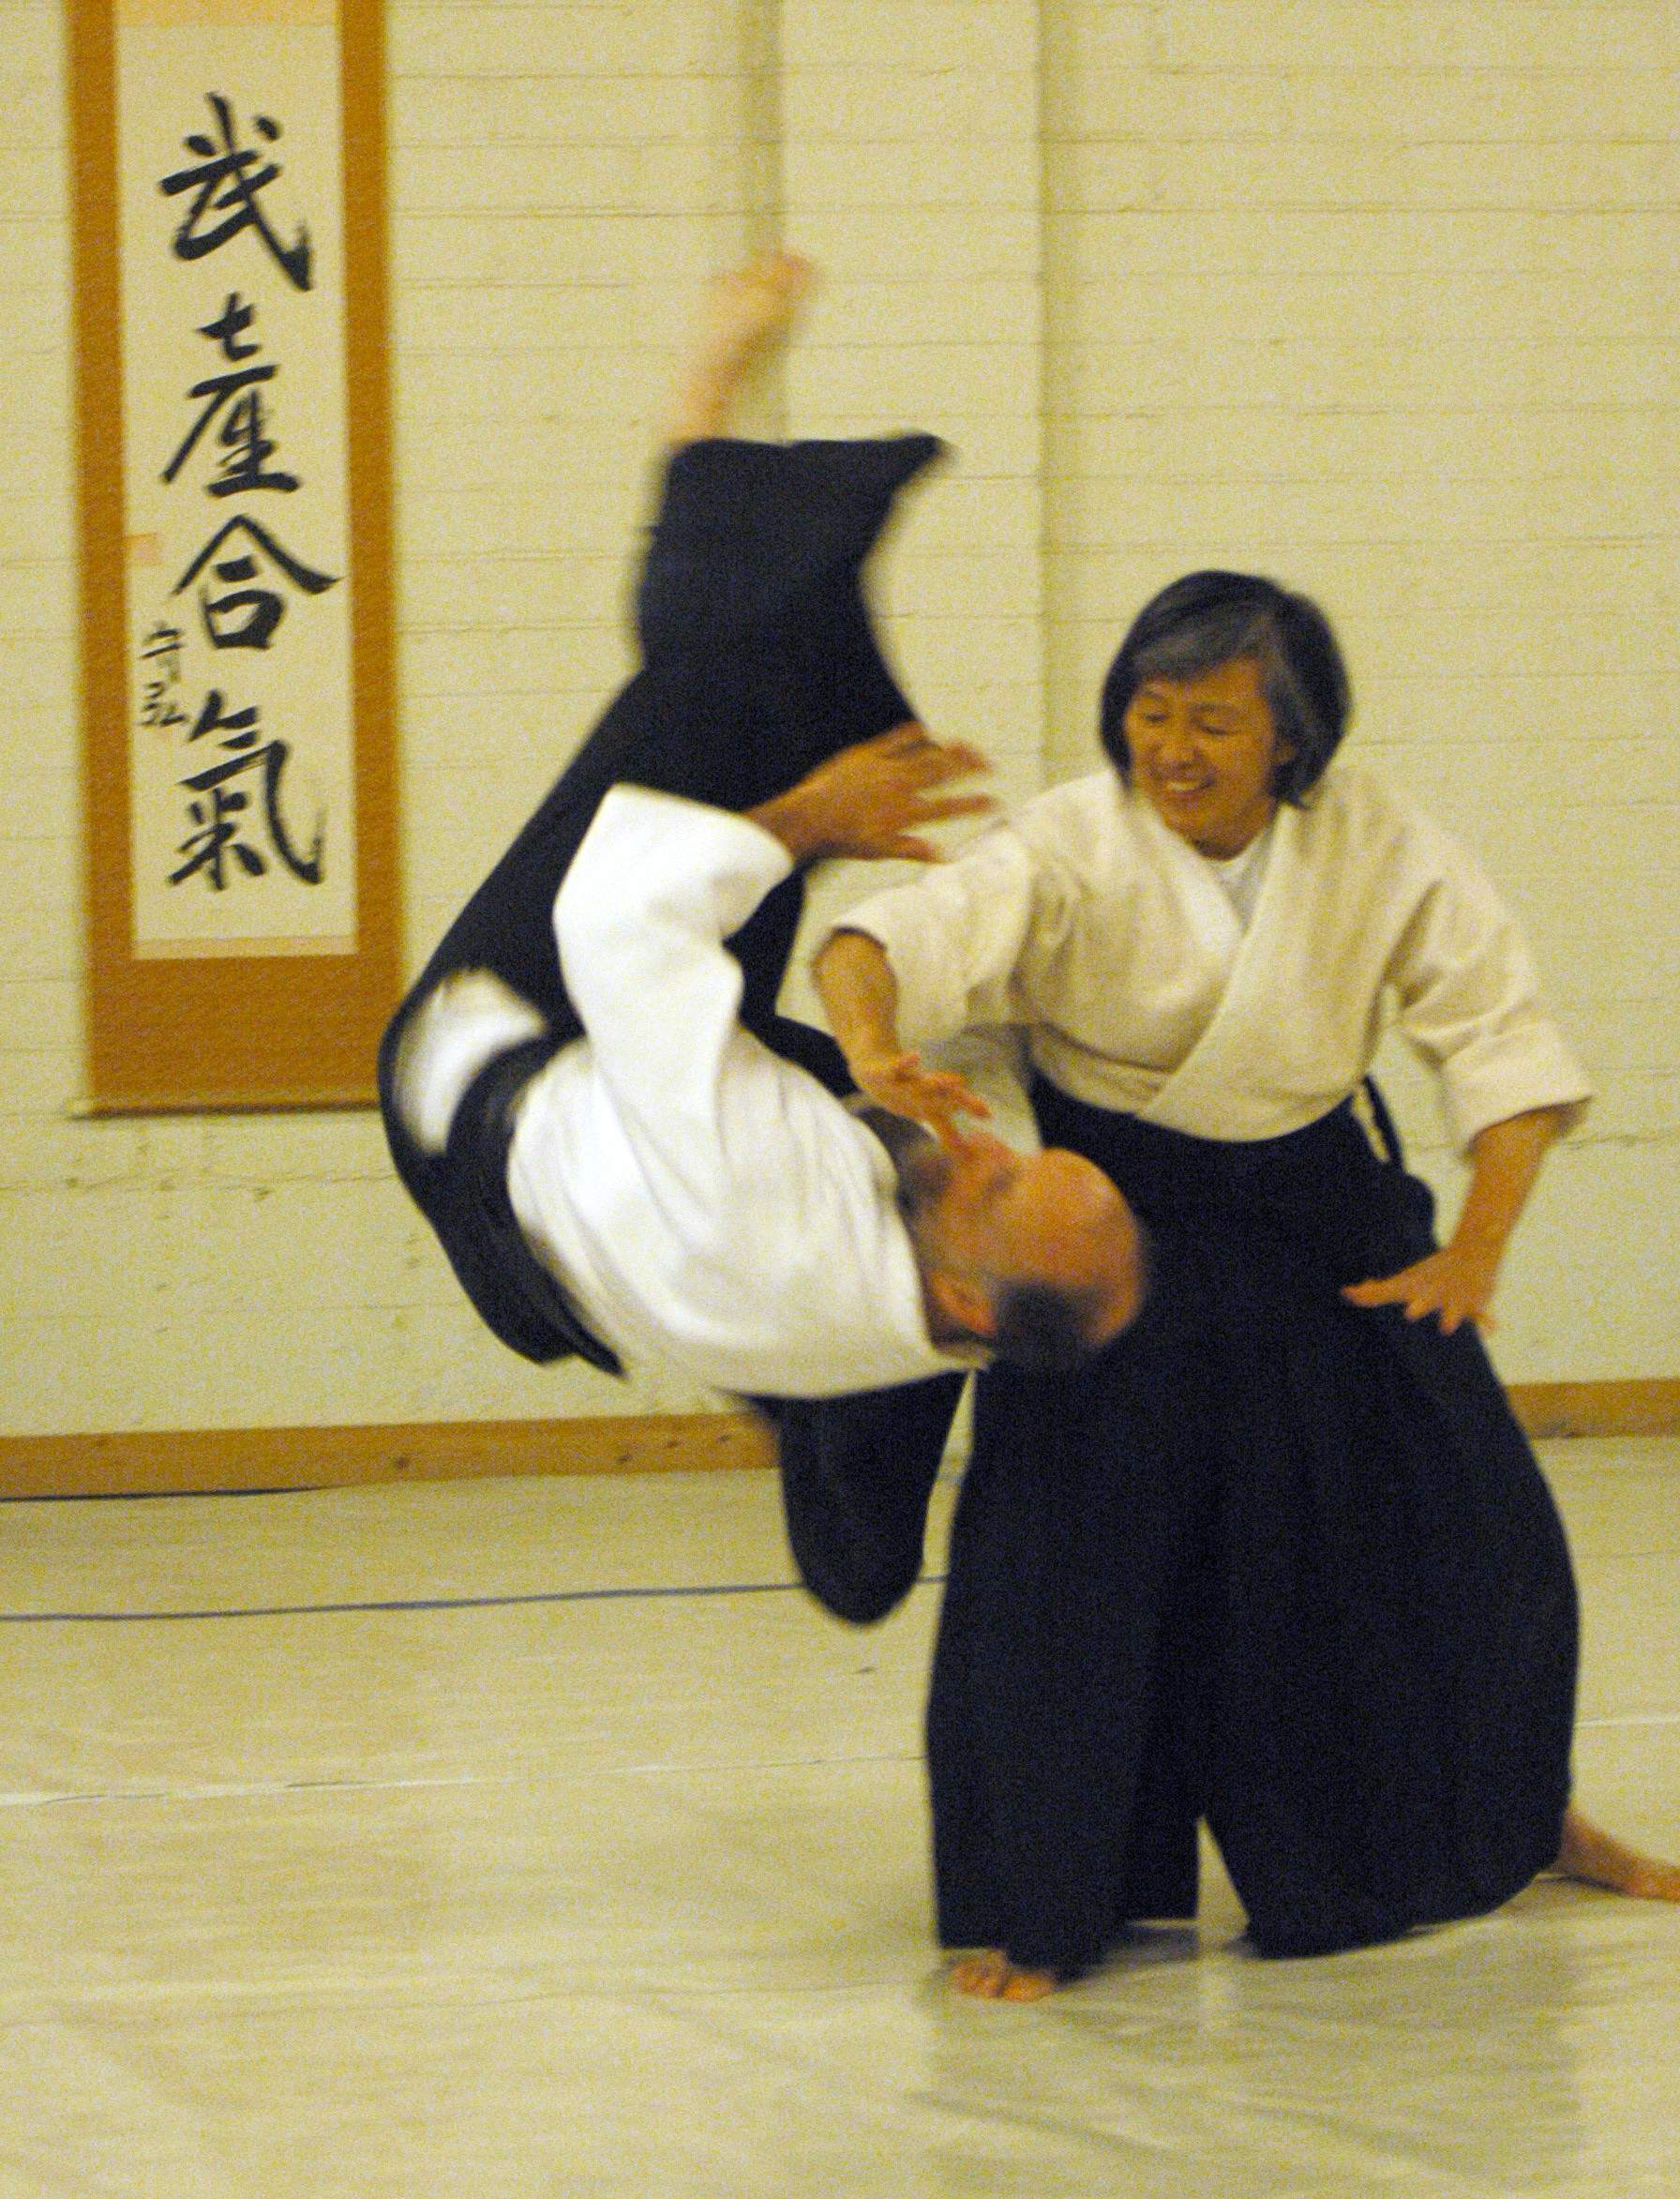 Sensei throwing Ben small.jpg